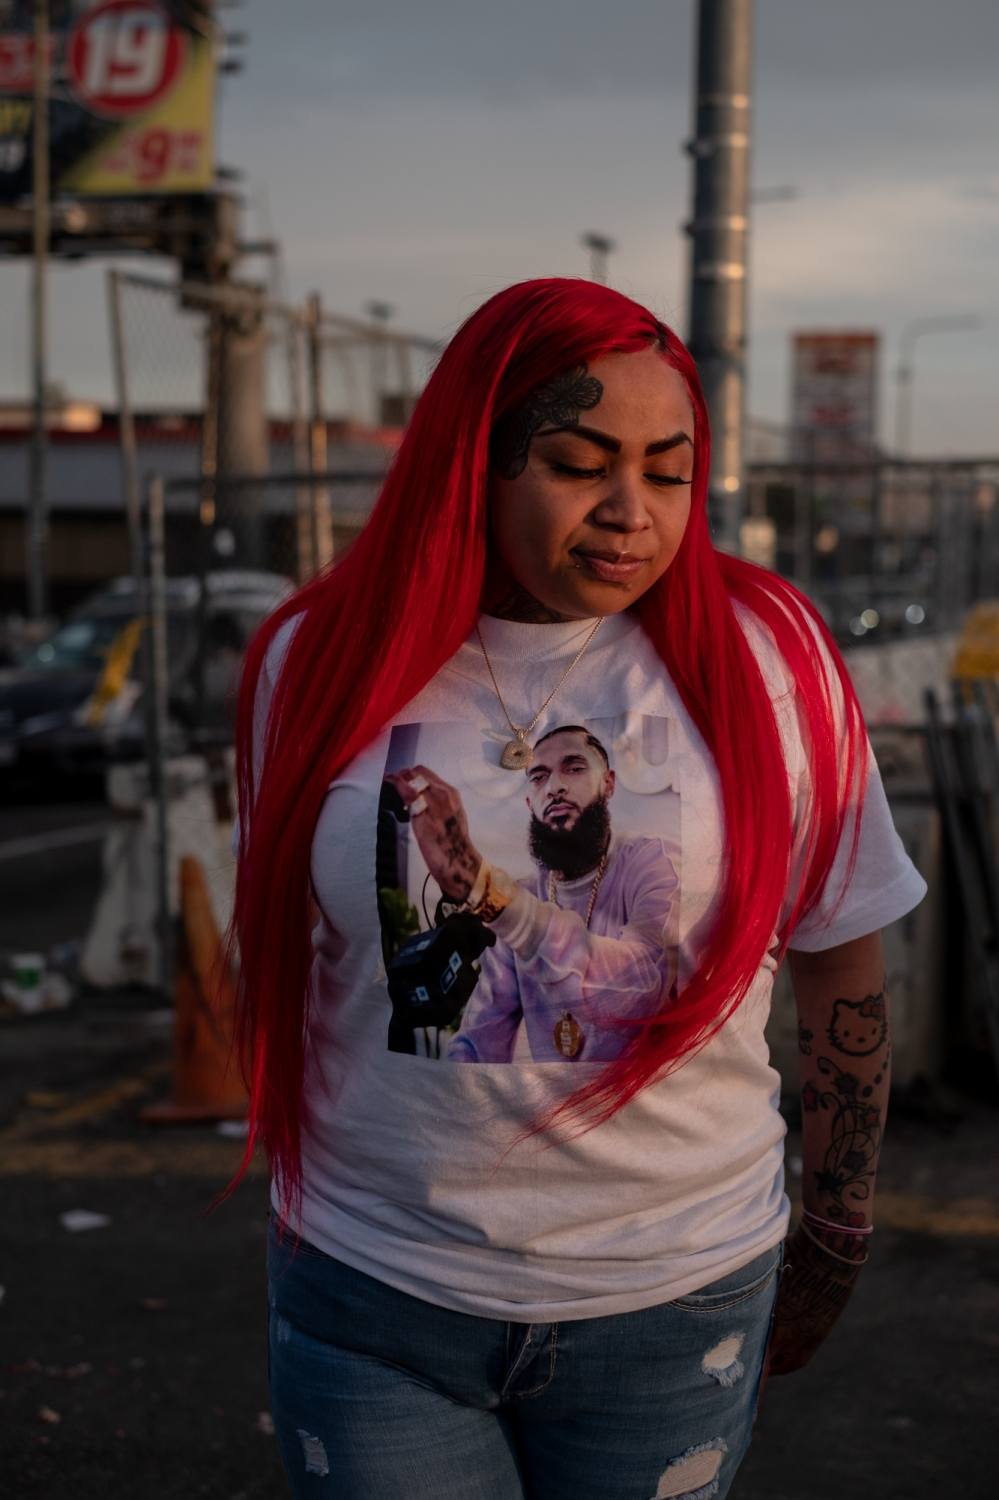 Photography image - Nipsey Hussle's Memorial in Los Angeles/ April 11th, 2019